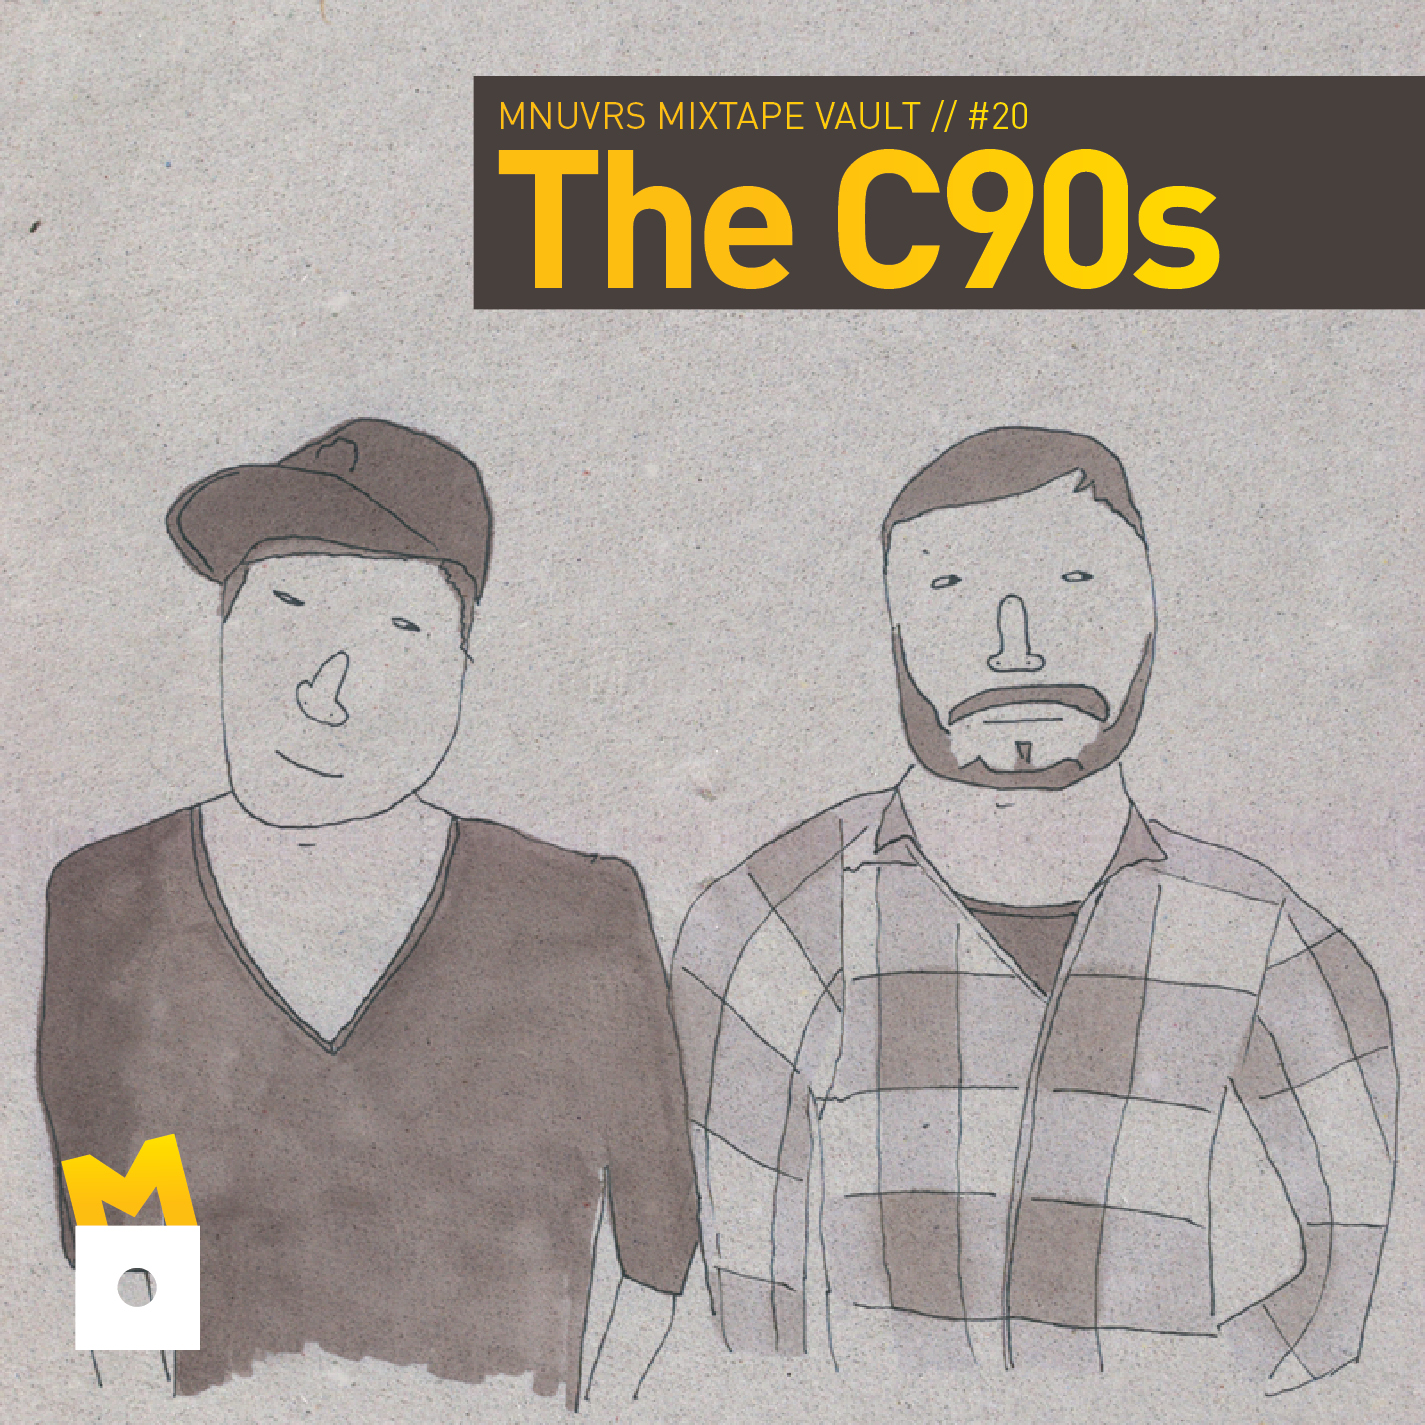 TheC90s_COVER1